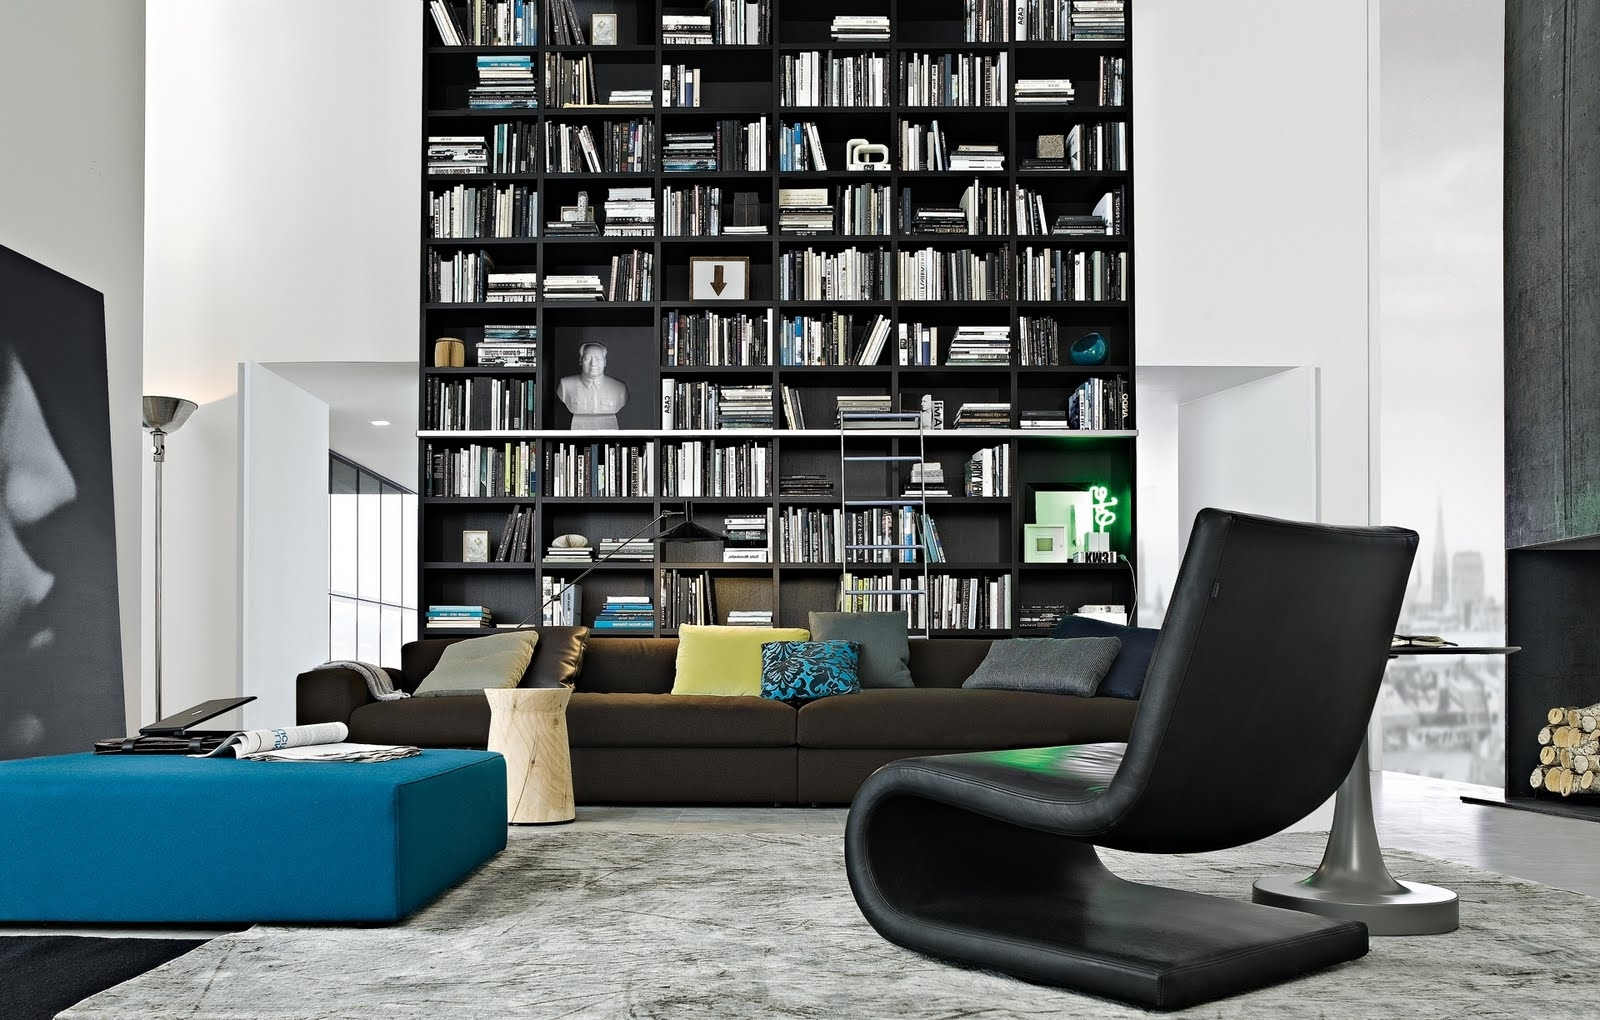 Very Tall Bookcases In Current Modern Bookcases ~ Home Design (View 13 of 15)